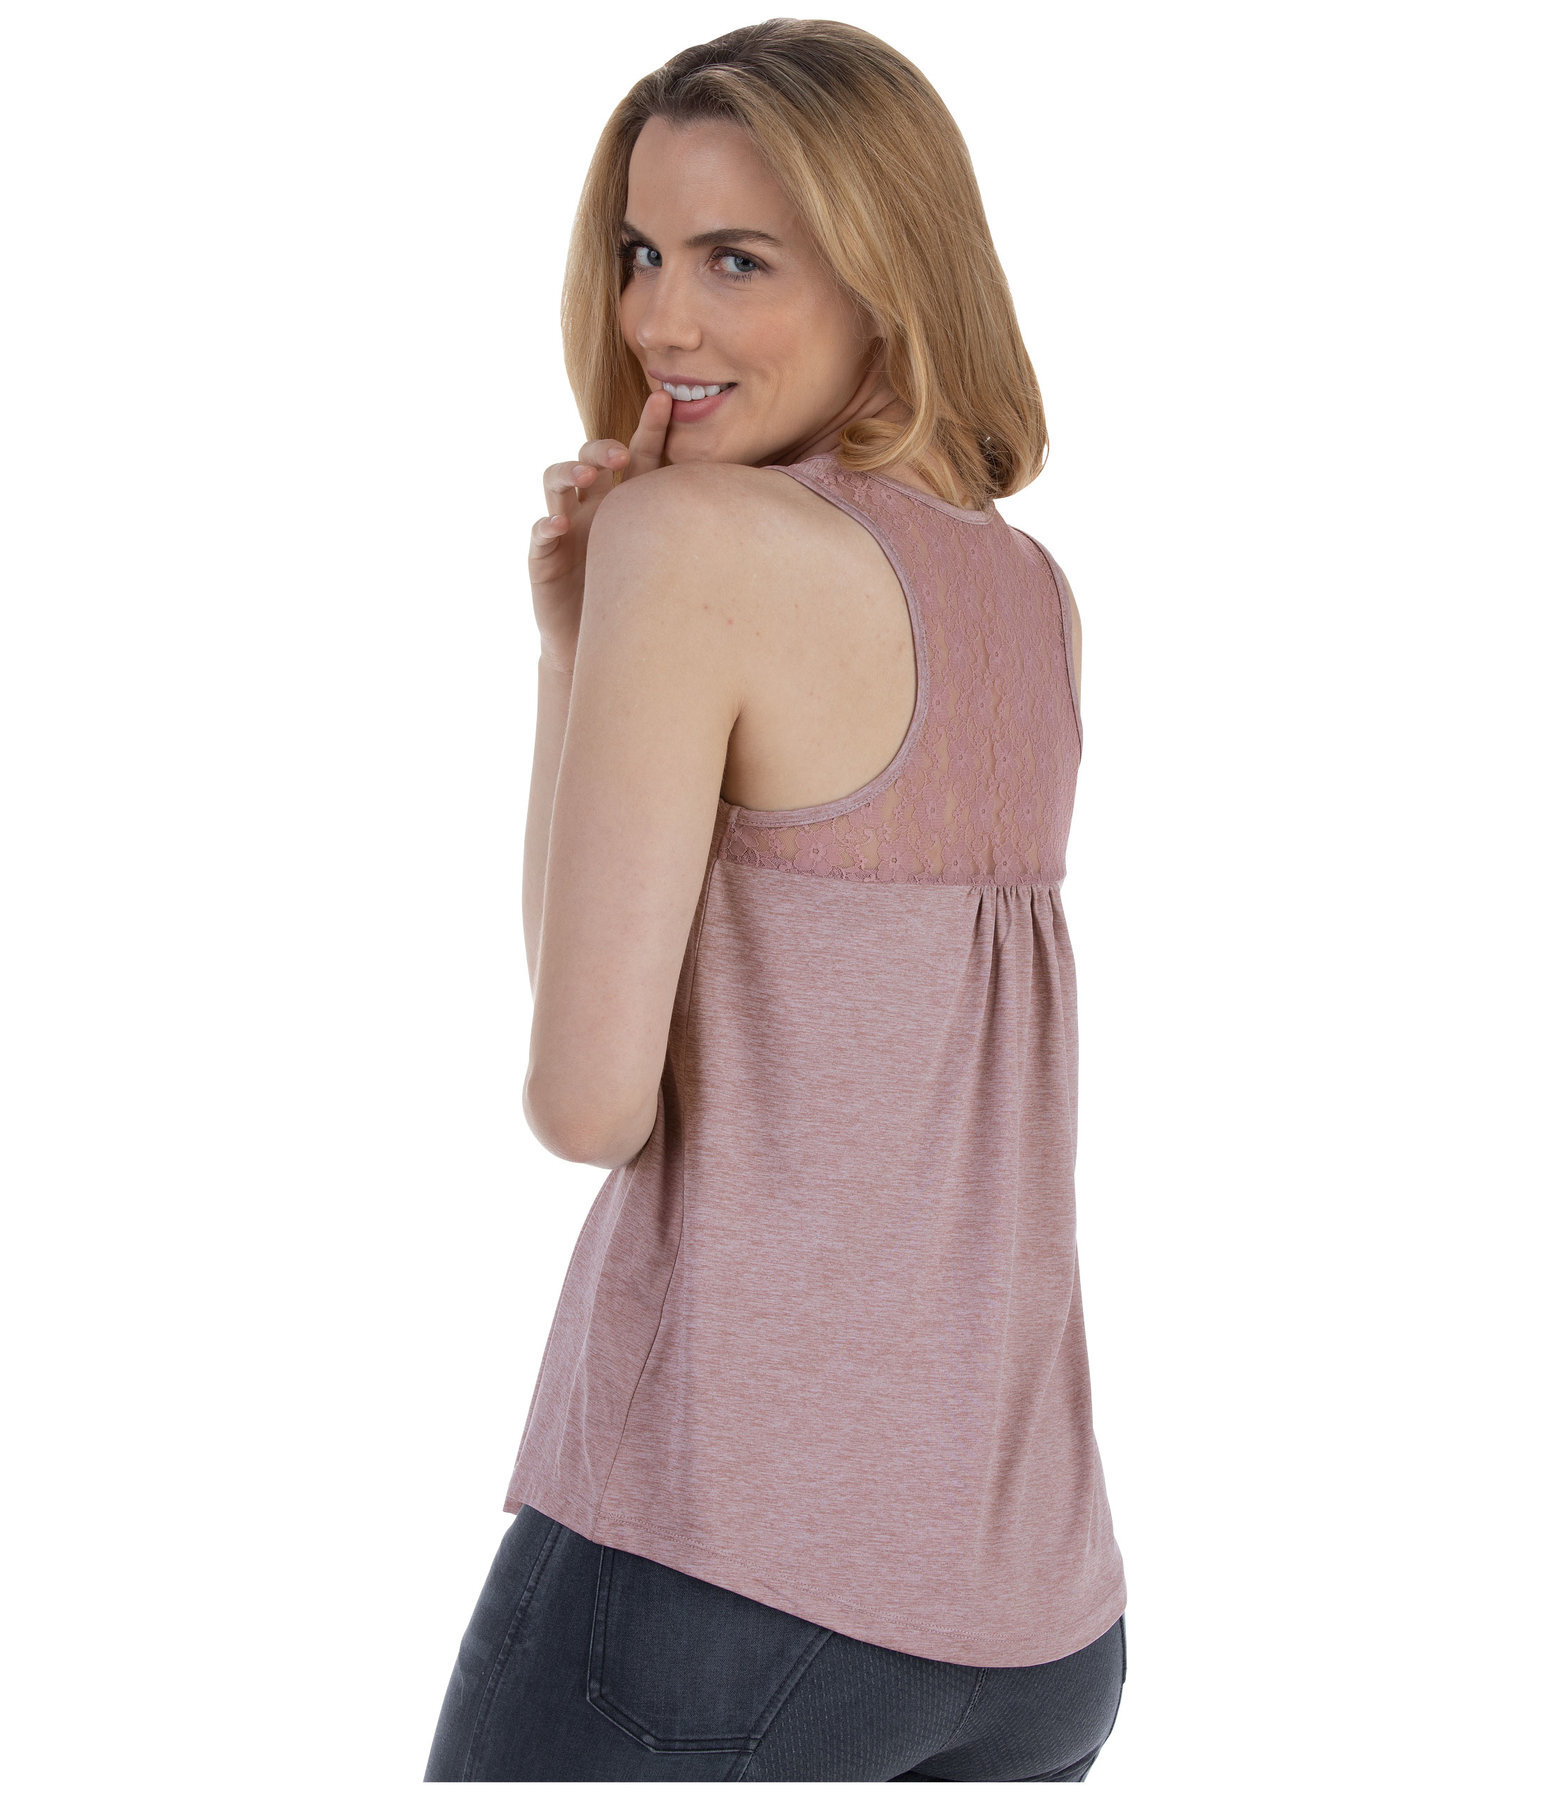 Funktions-Tank-Top Lotte